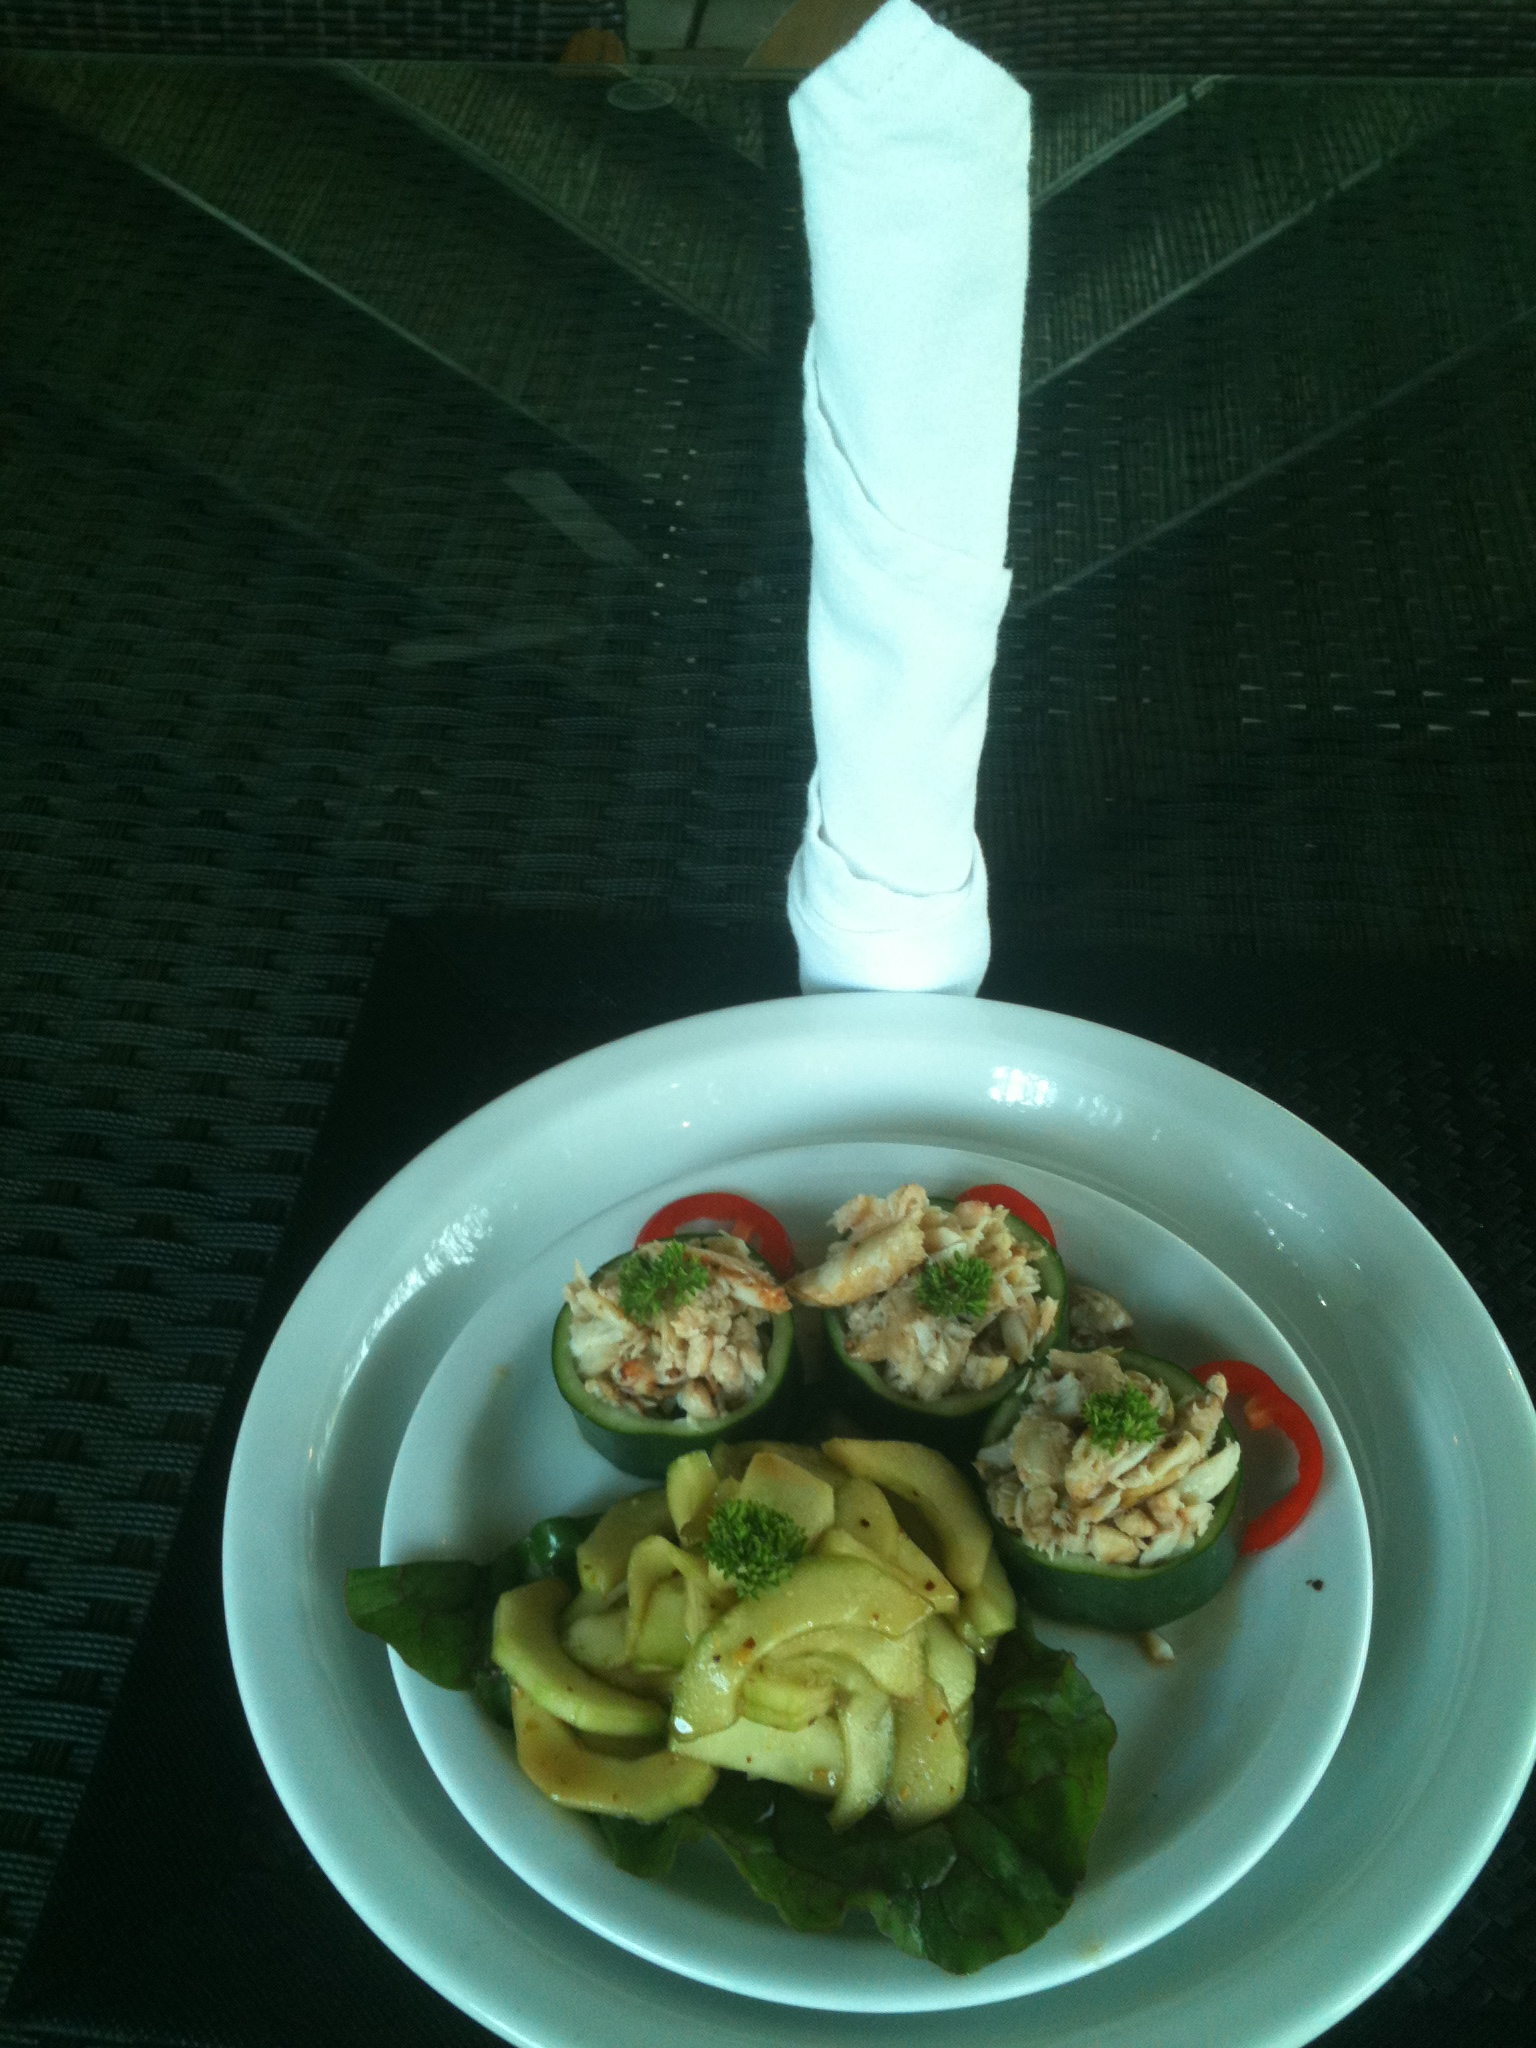 Crab in Cucumber Appetizer